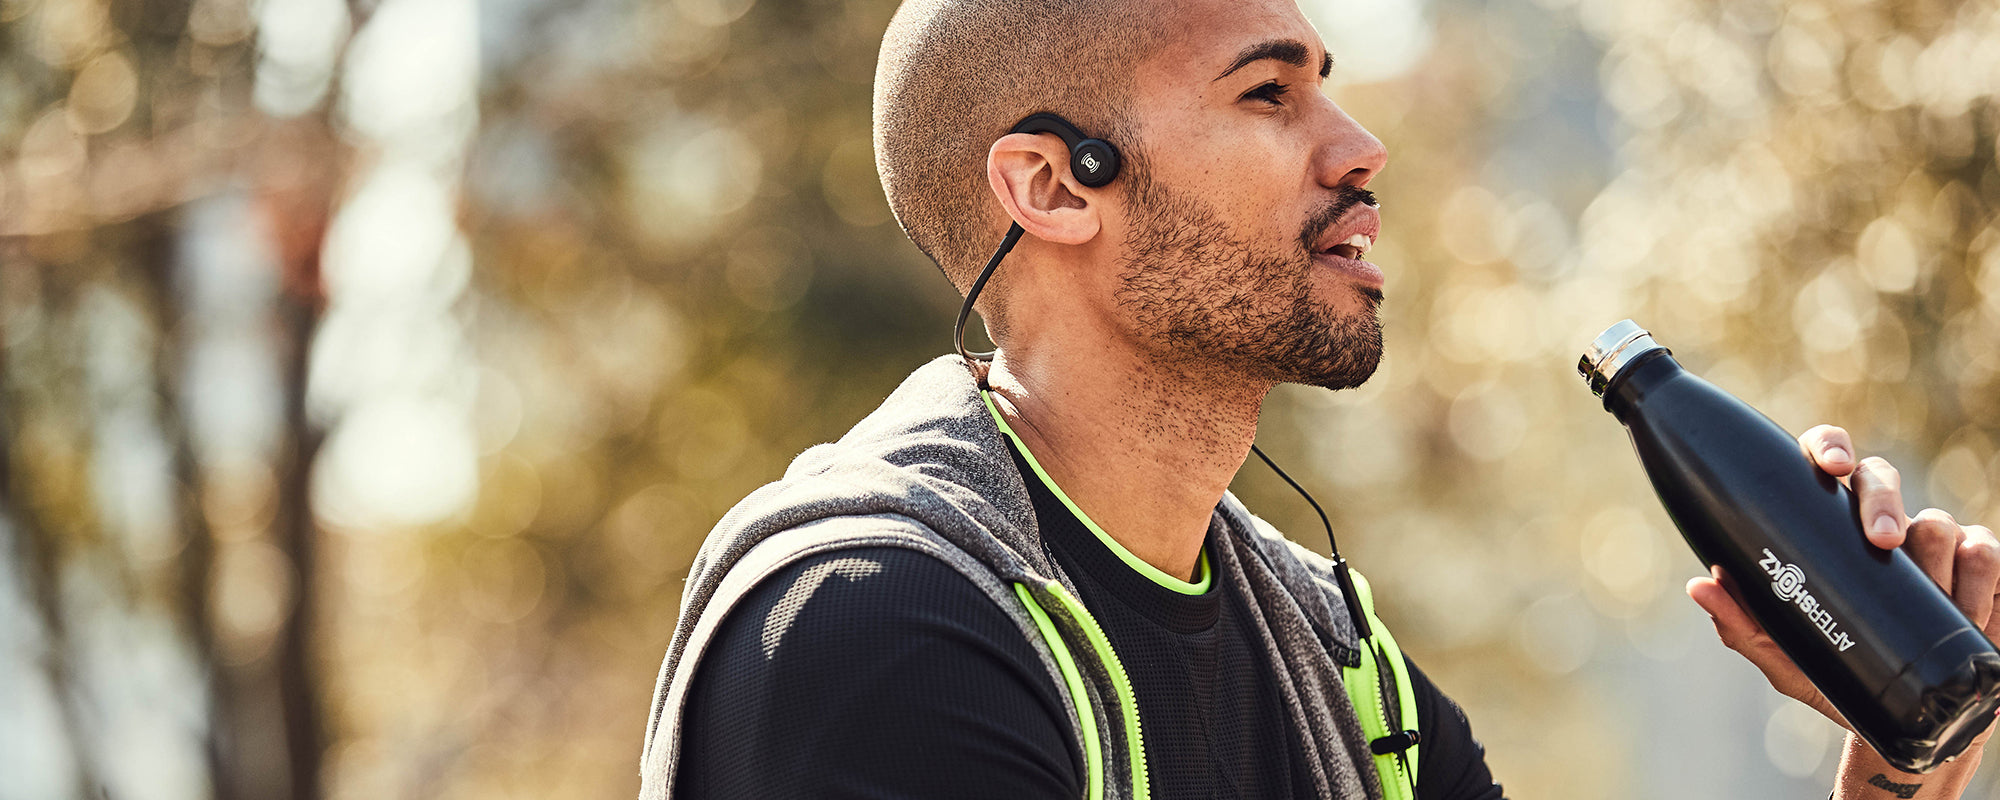 Product Spotlight: Meet Our Sportz Titanium Headphones!